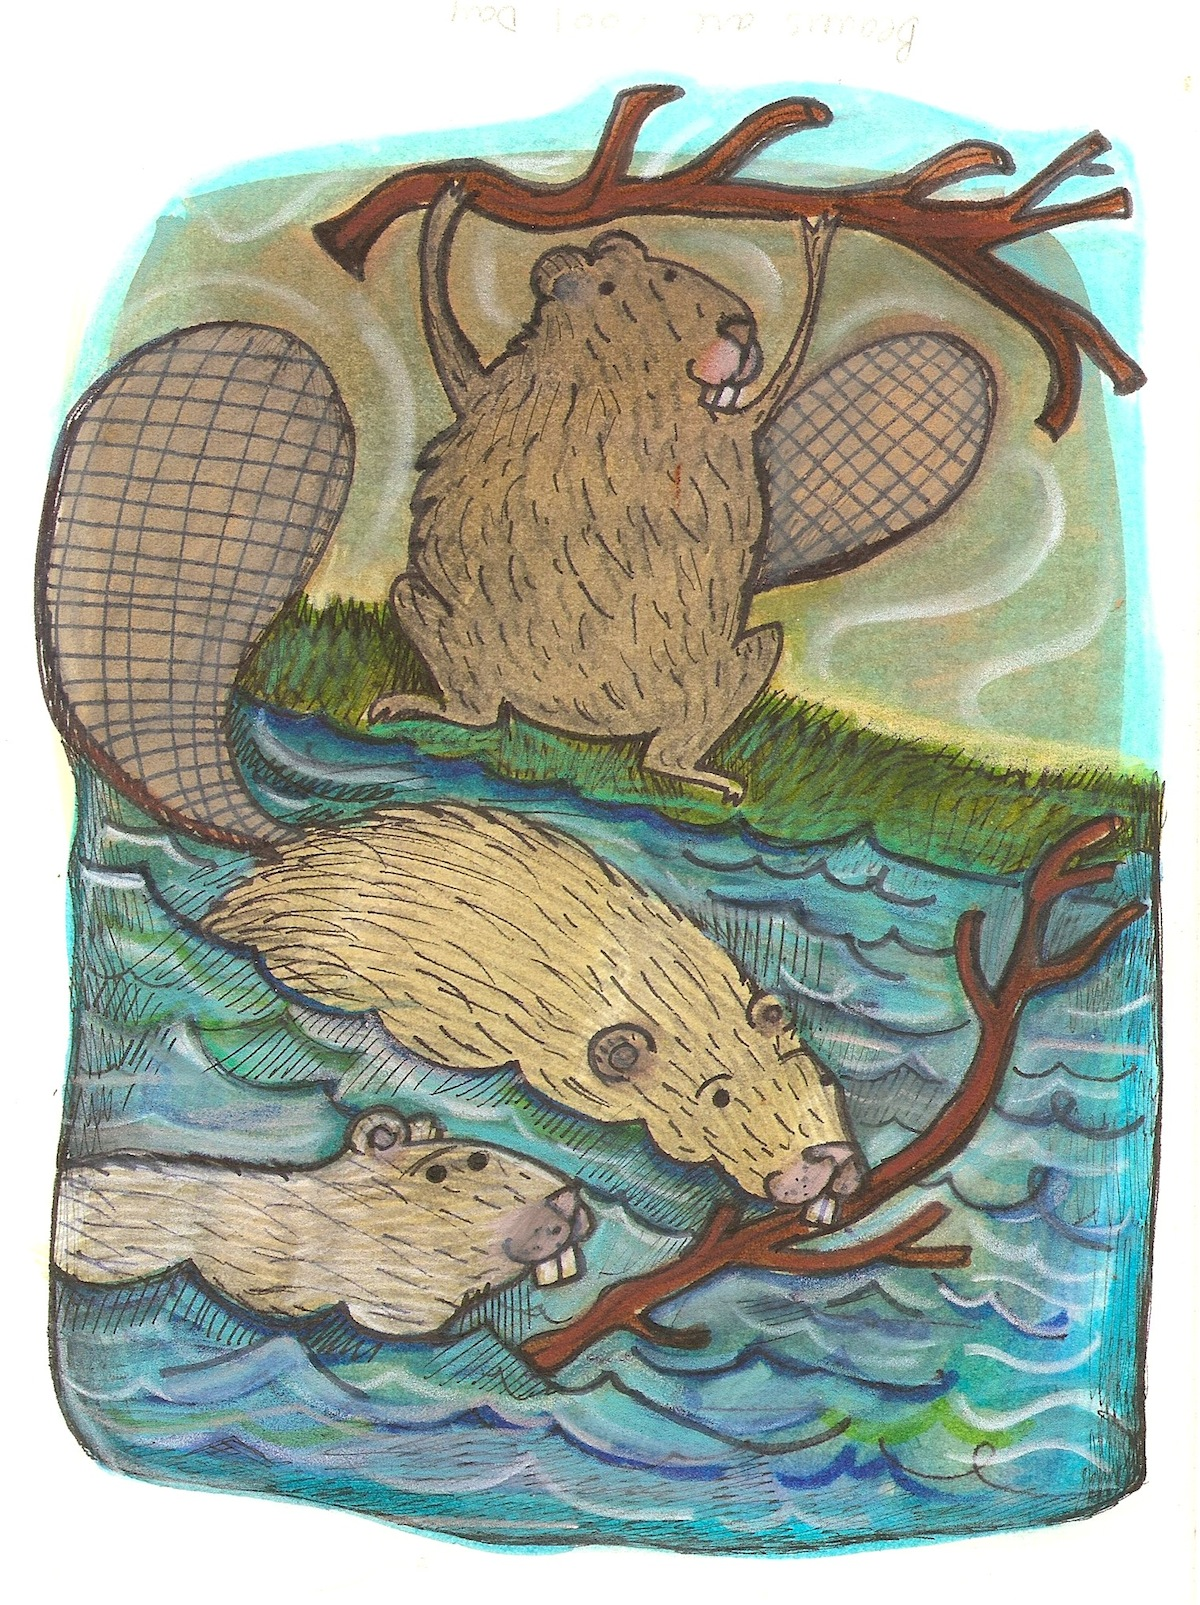 beavers are workers